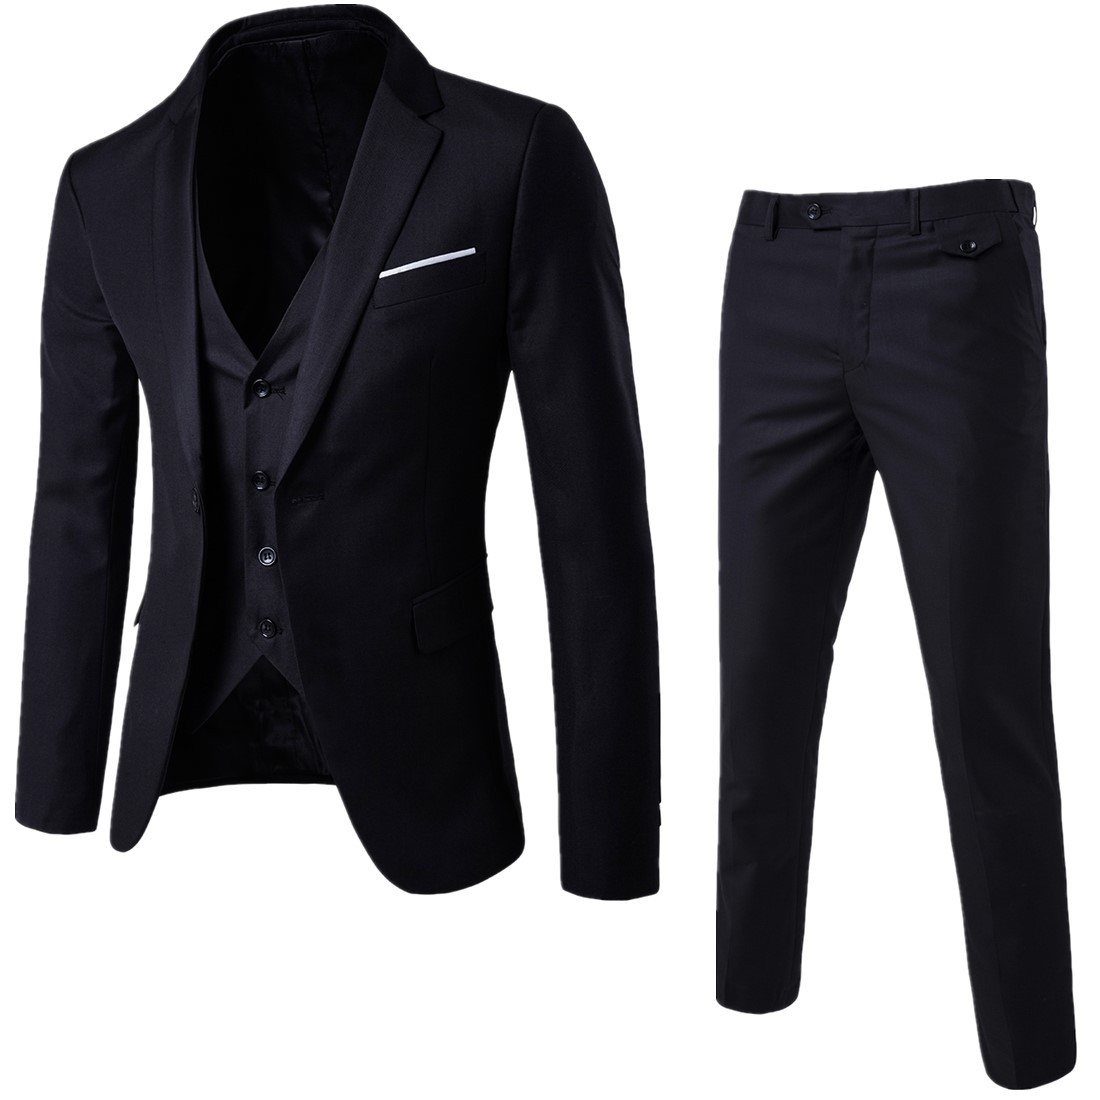 Korean-style Suit Single-Button Suit Slim Fit Leisure Suit Elegant Men Three-piece Set Groom Best Man Marriage Ceremony